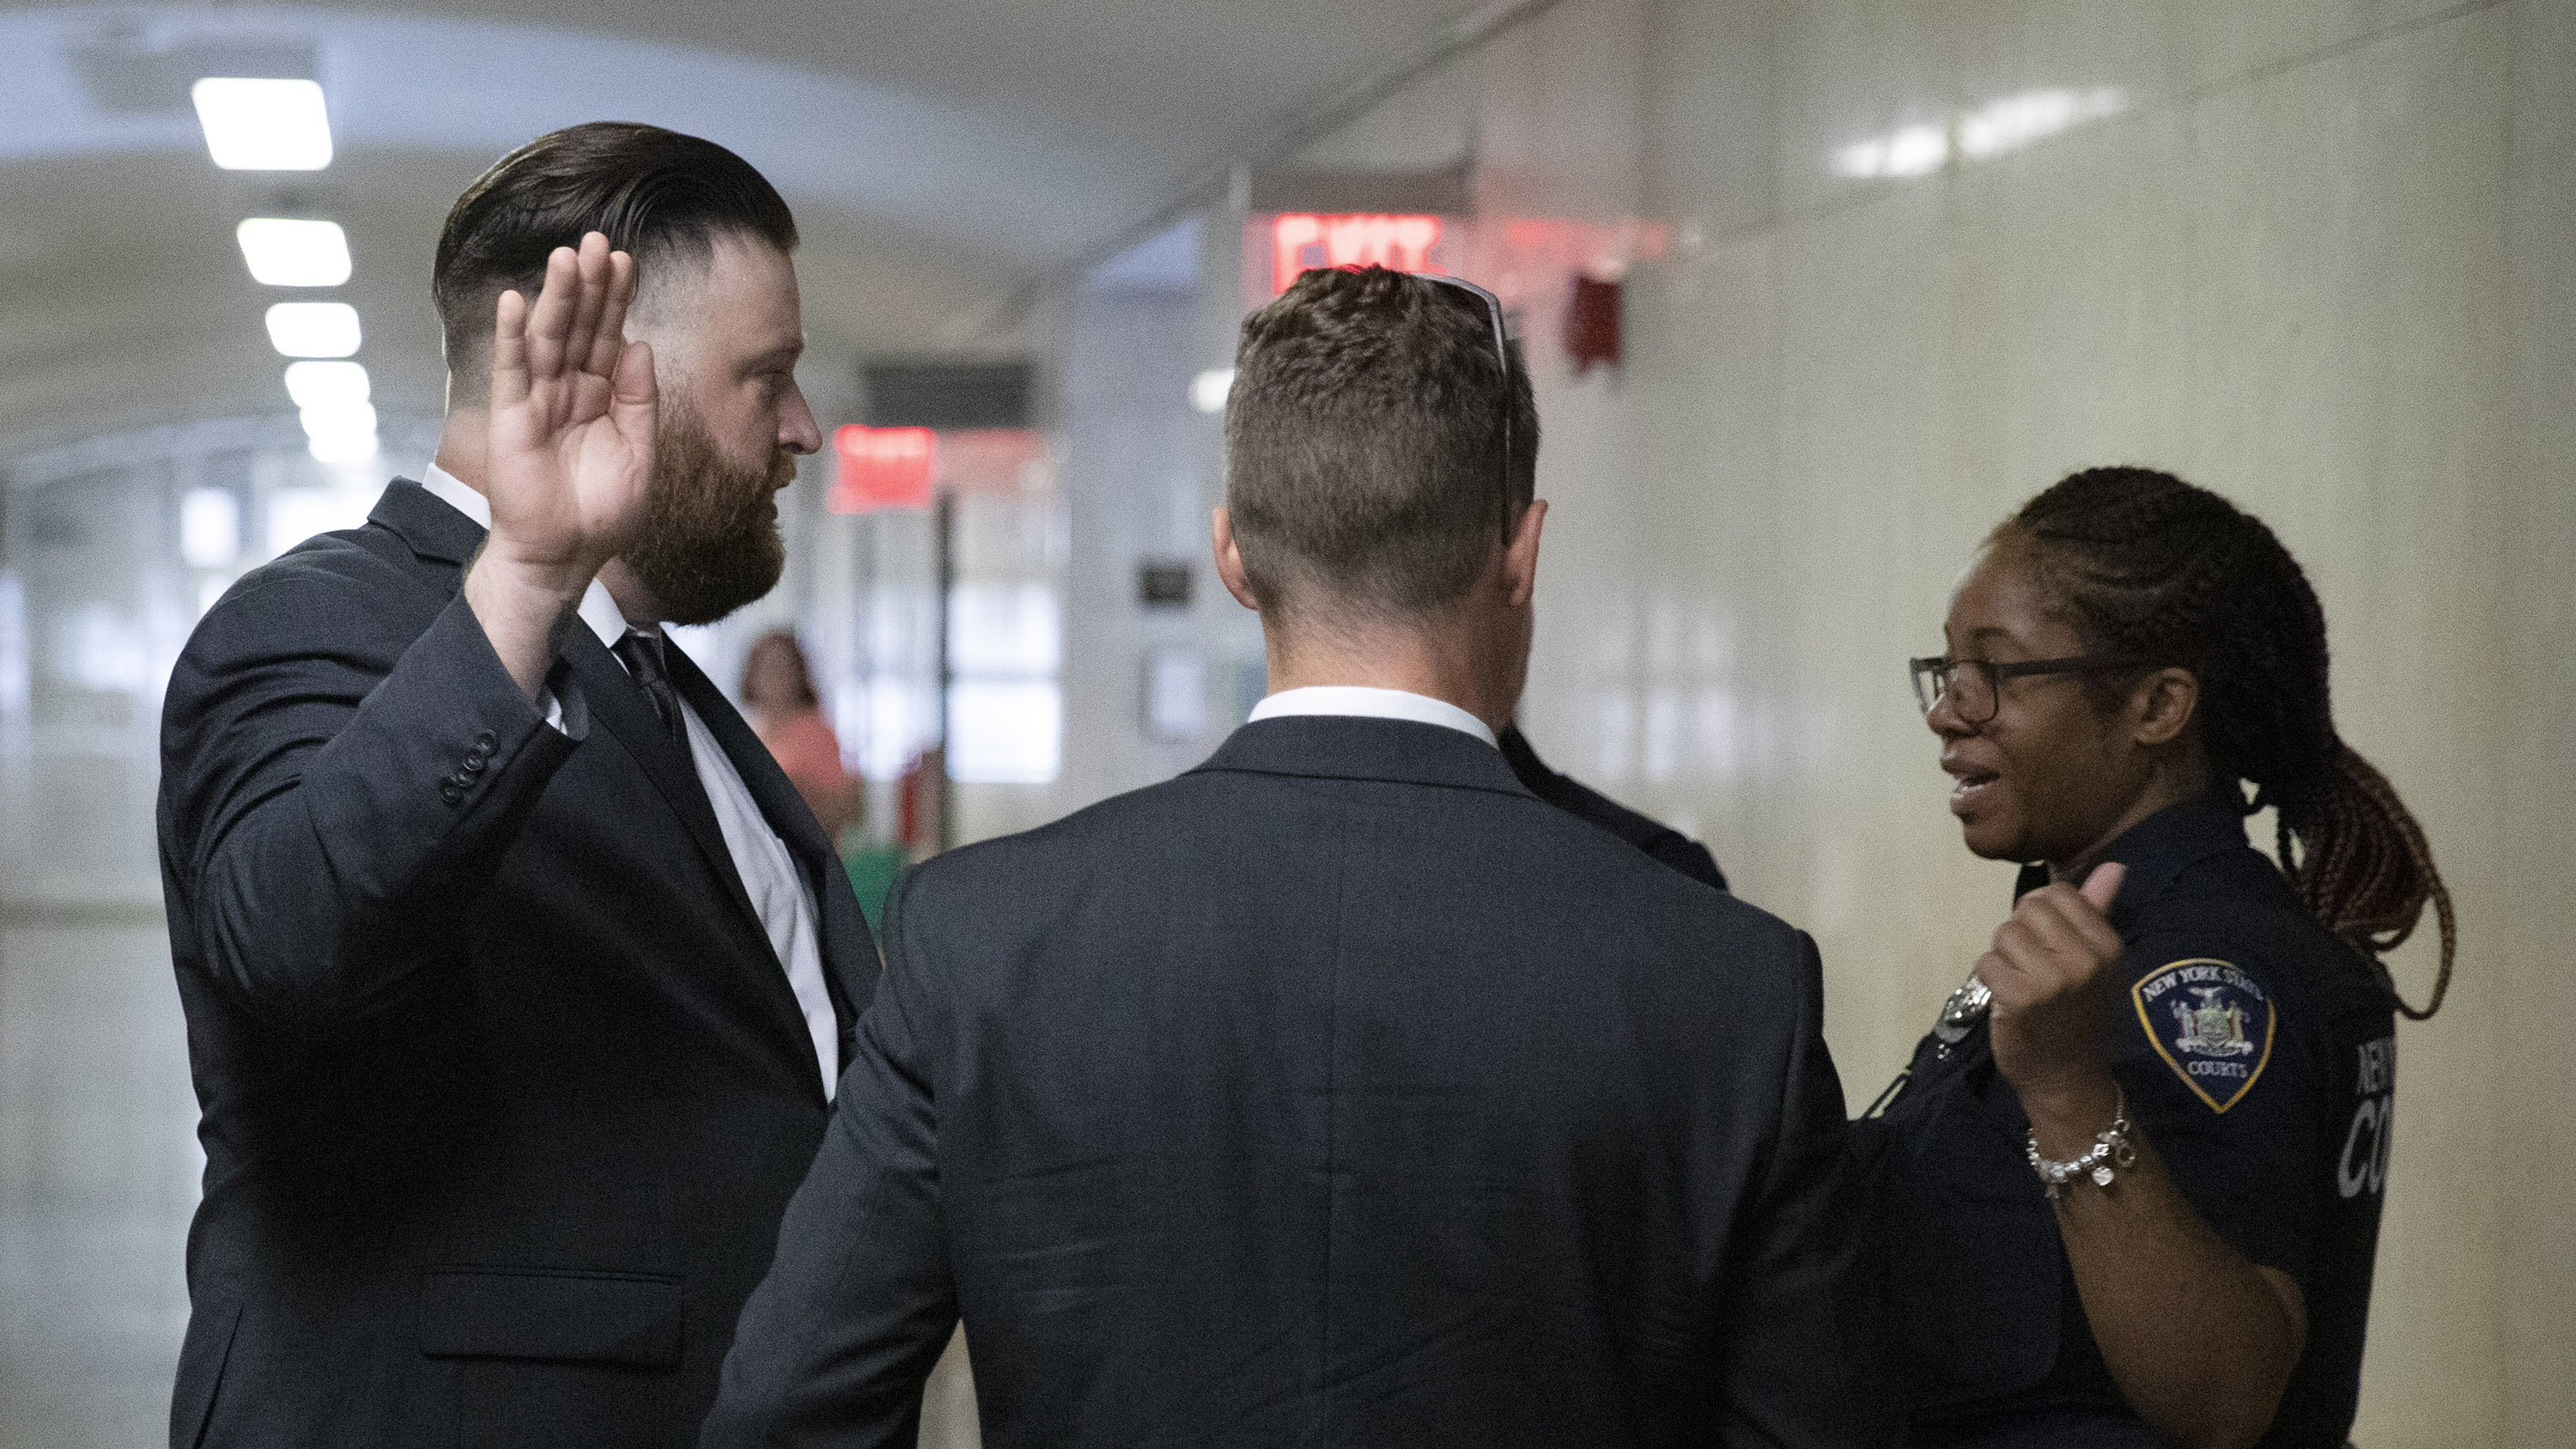 2 Proud Boys members were found guilty of assault in a brawl with Antifa